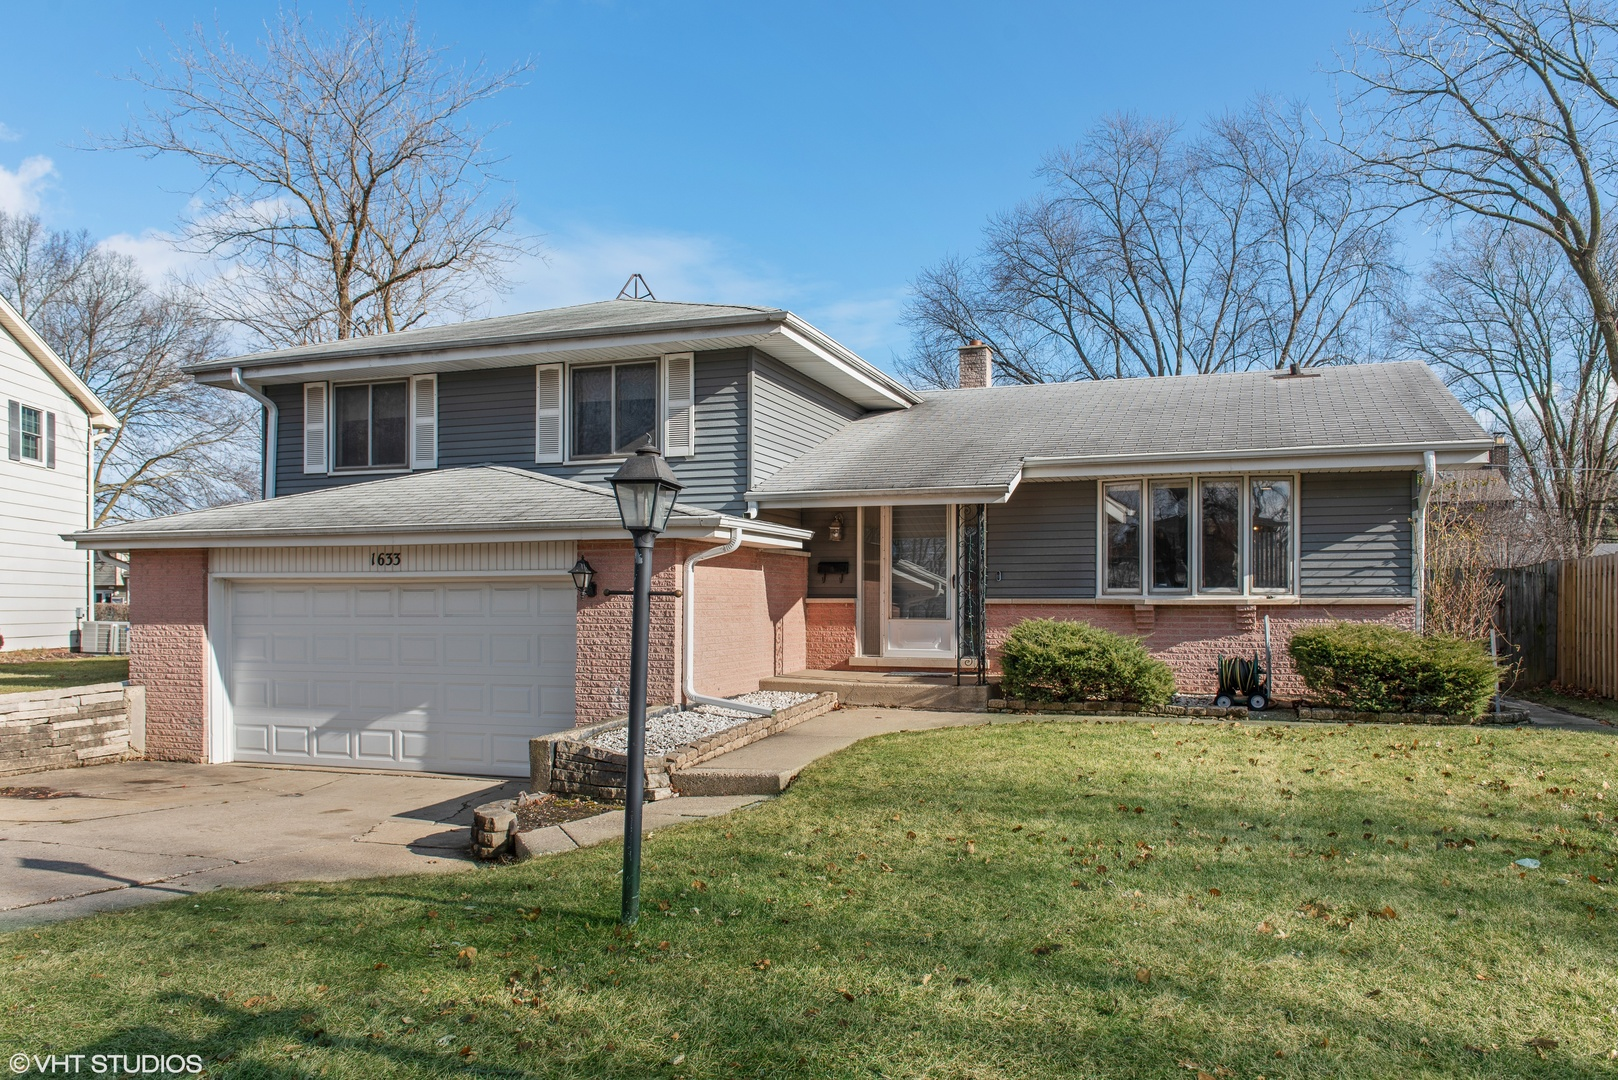 1633 Imperial Drive Glenview, IL 60026